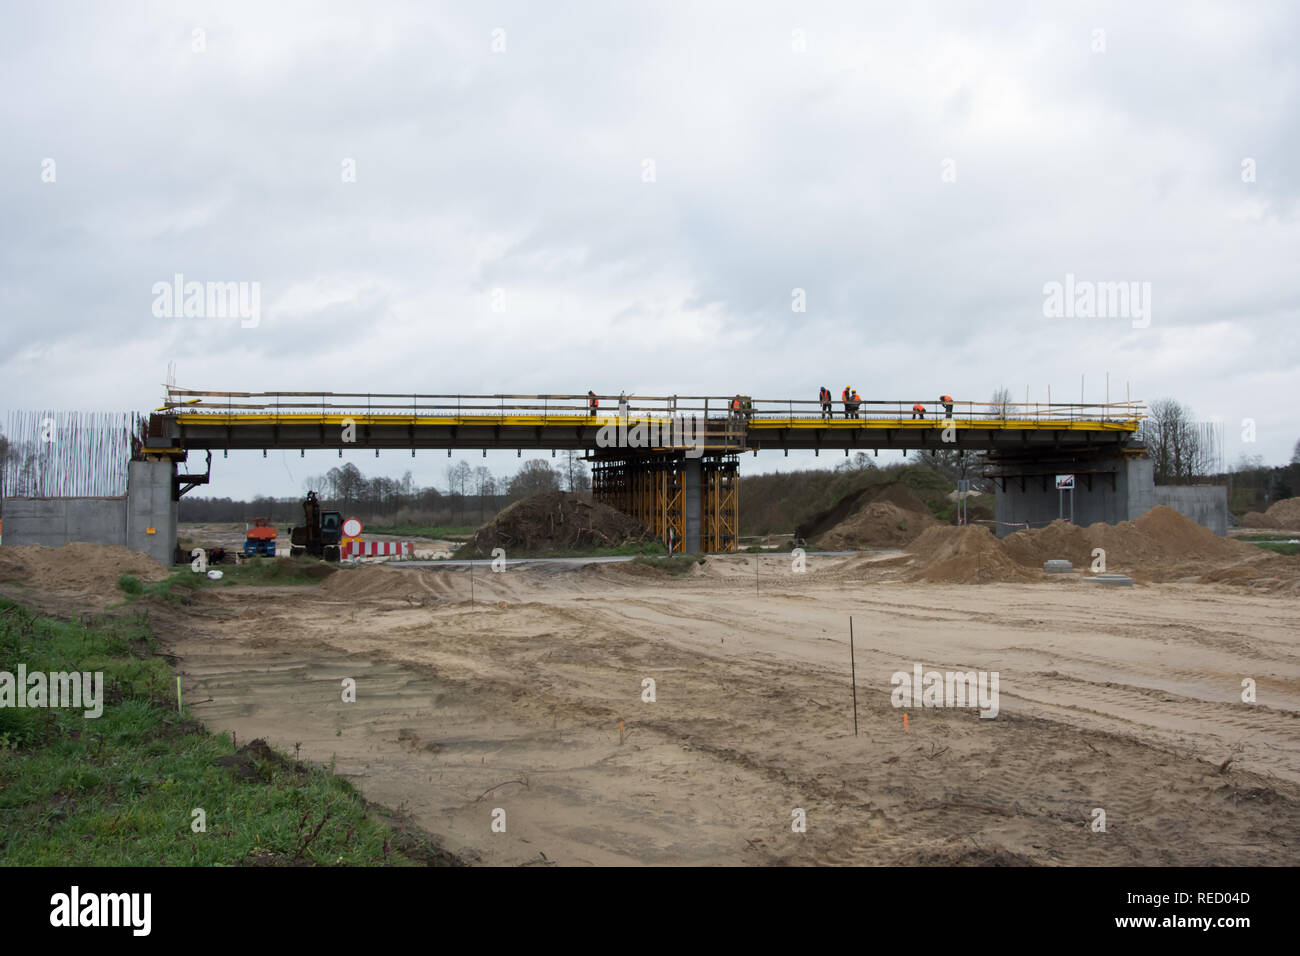 KOWALEWO, KUJAWSKO-POMORSKIE/POLAND, NOVEMBER 11, 2017 - S5 motorway construction site - viaduct with scaffolding and sand for substructure - Stock Image